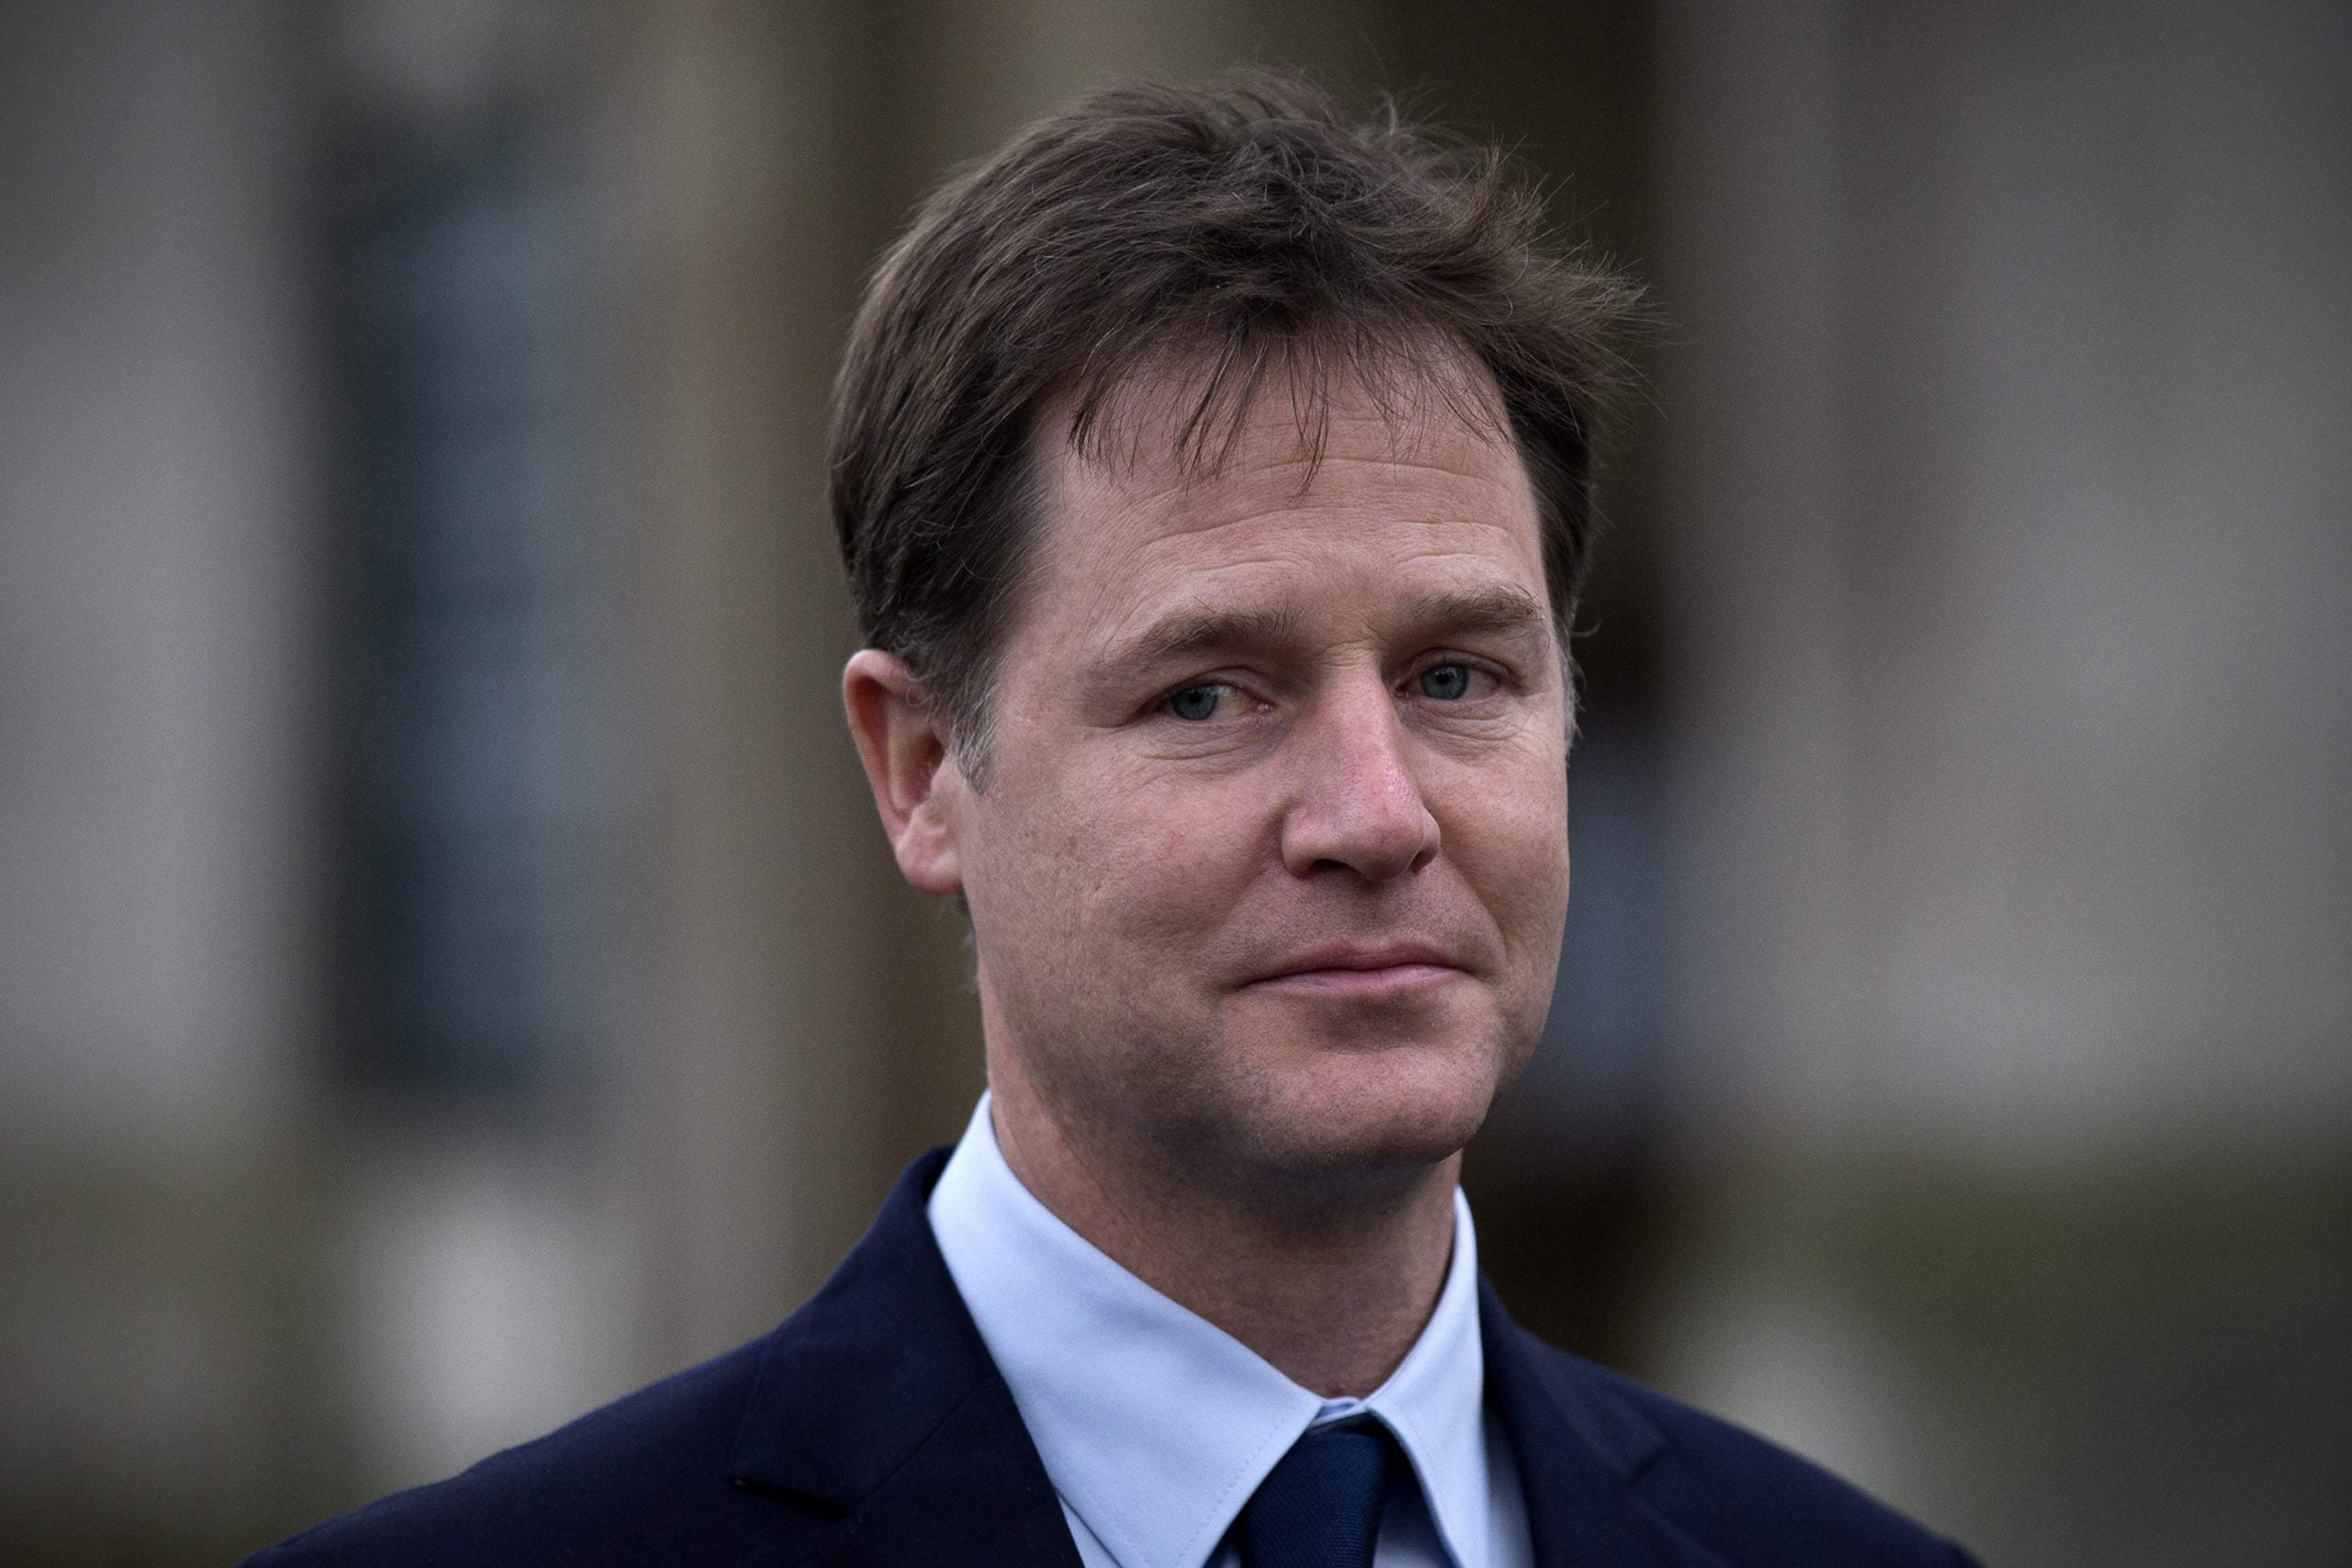 Could Nick Clegg be the price for a Lib Dem coalition with Labour?